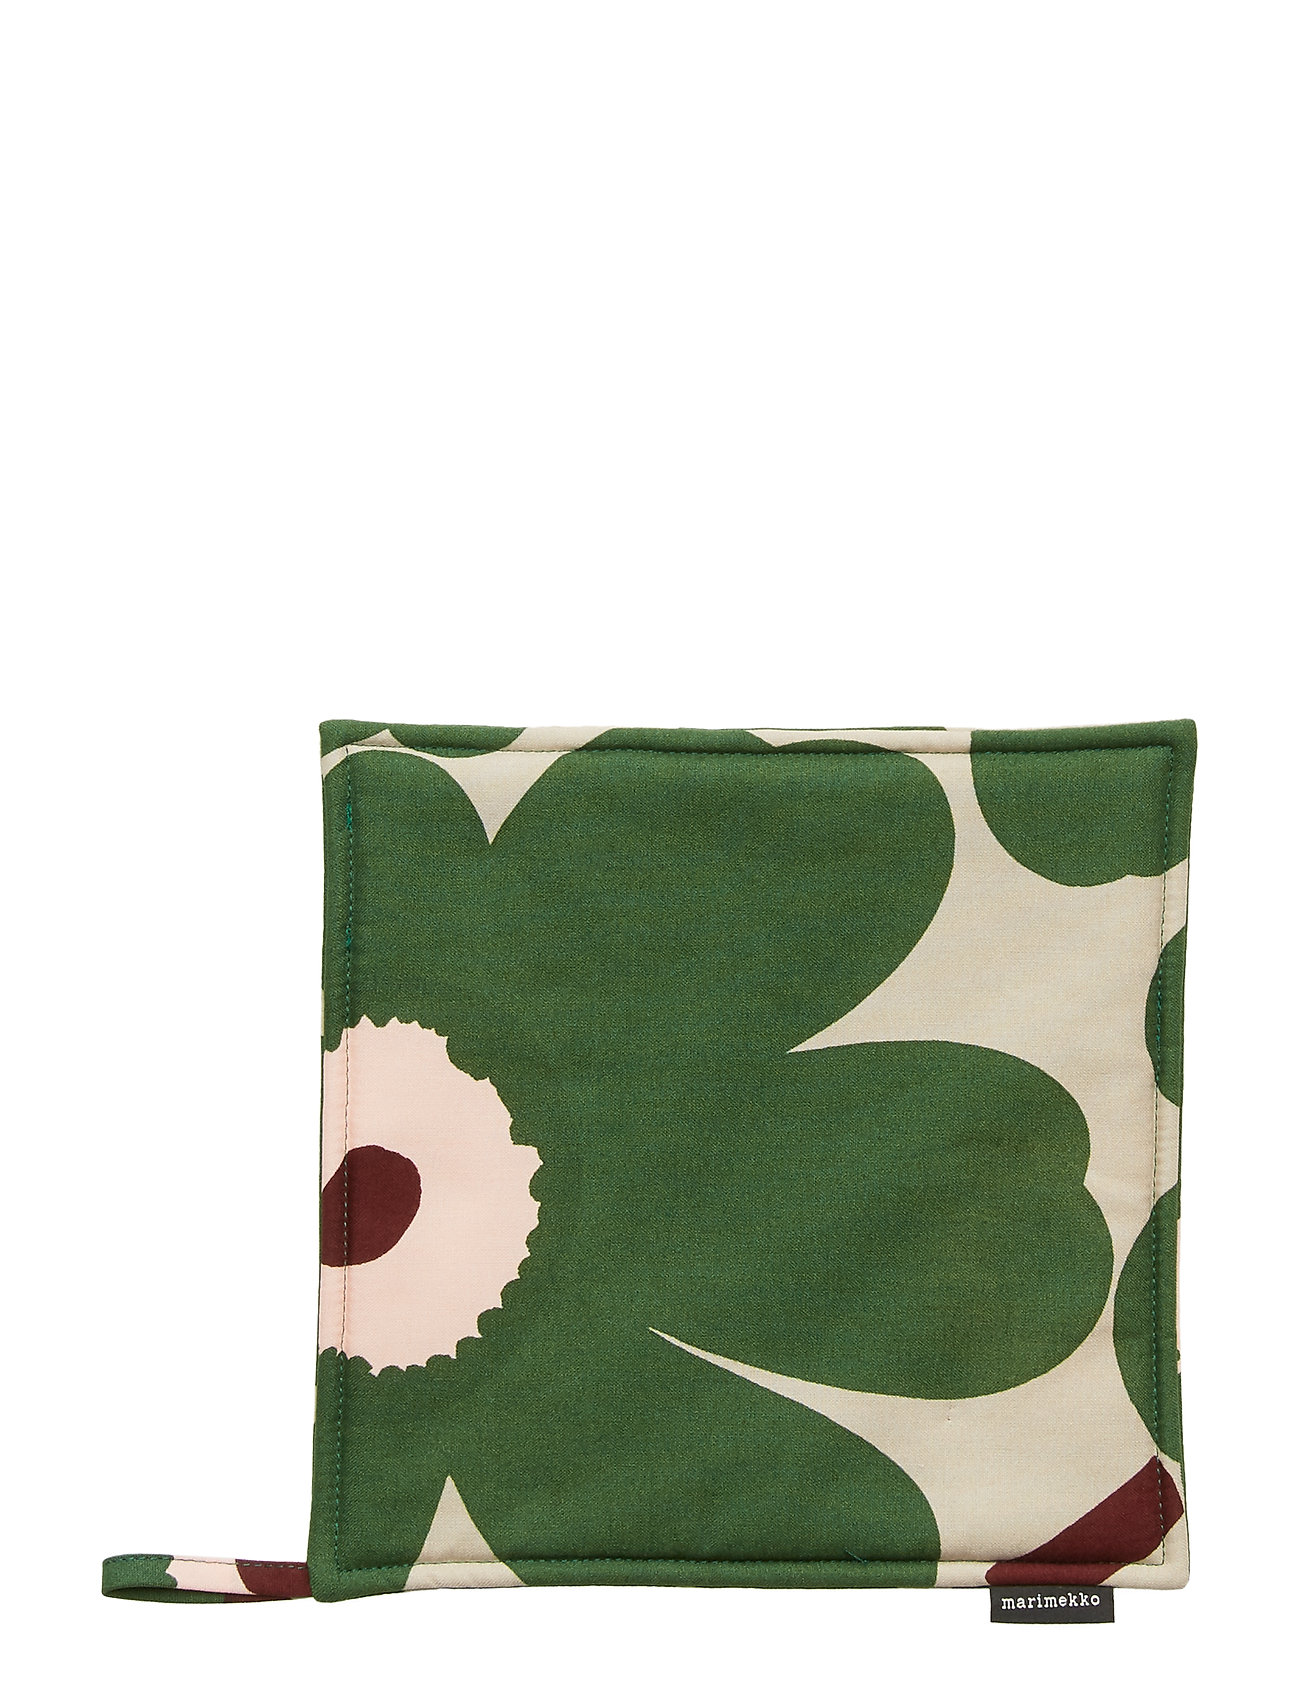 Image of Pieni Unikko Pot Holder Home Kitchen Potholder Grøn Marimekko Home (3256141351)